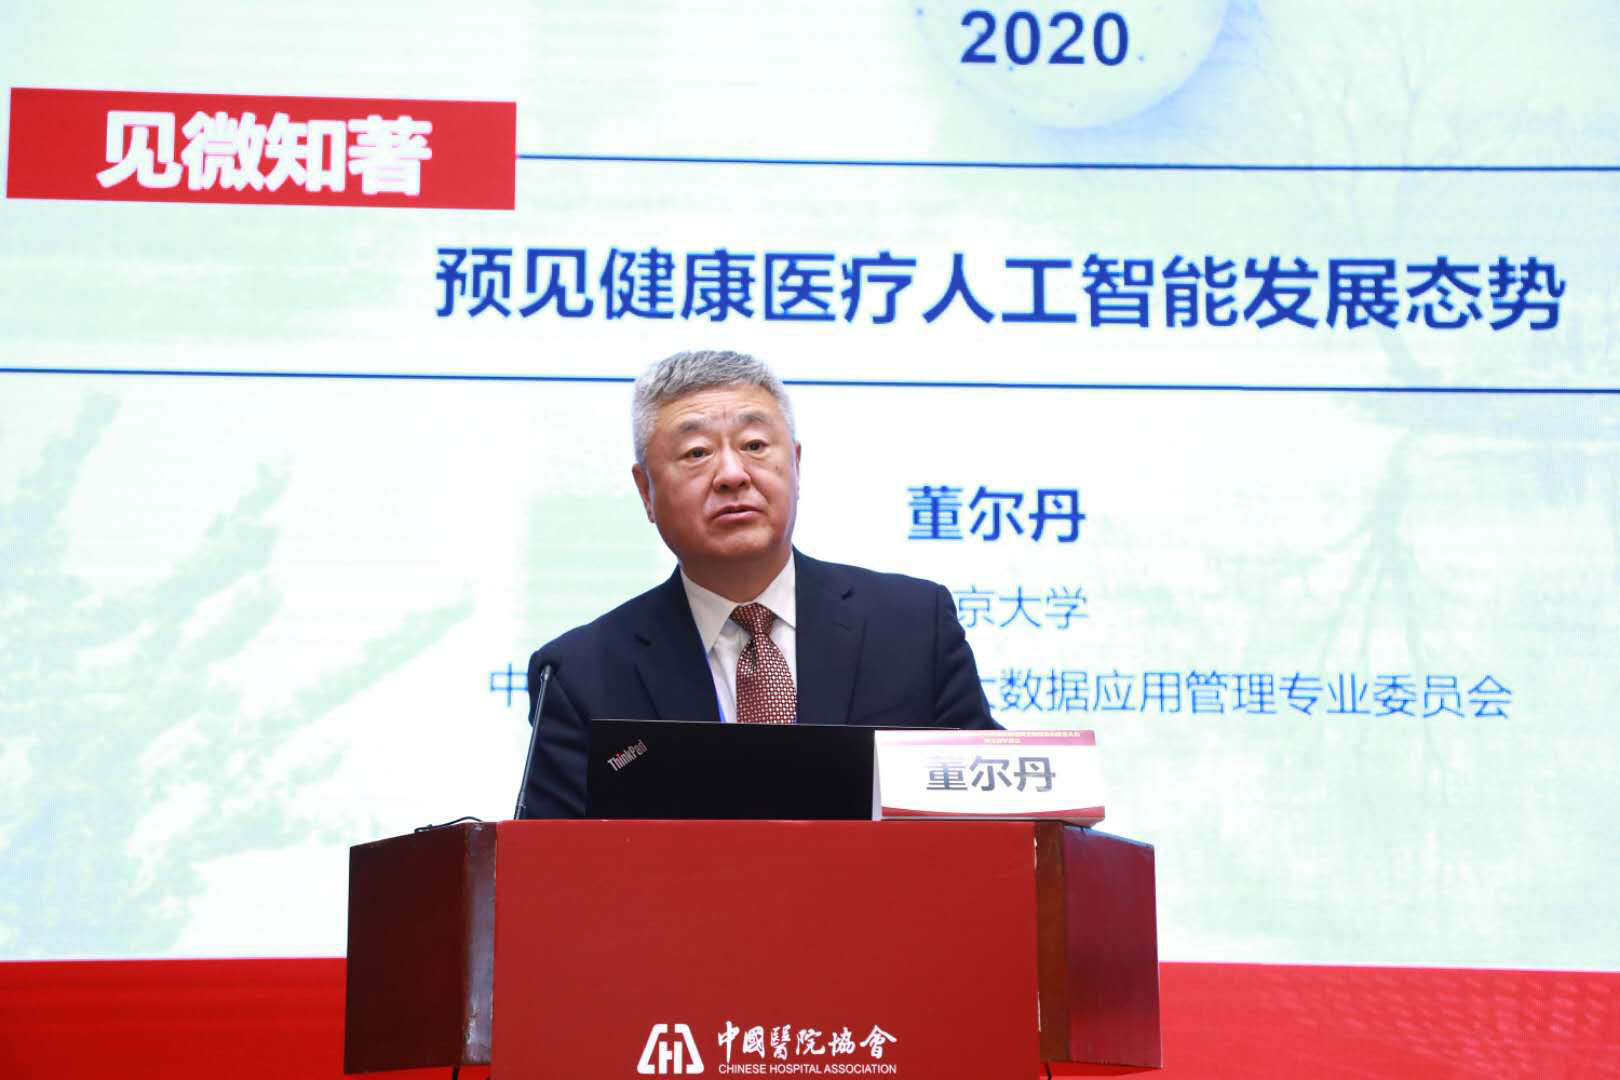 Erdan Dong, MD, PhD, Head of the Department of Cardiology and Institute of Vascular Medicine at Peking University Third Hospital, introduces the key findings of the Health AI Index report.